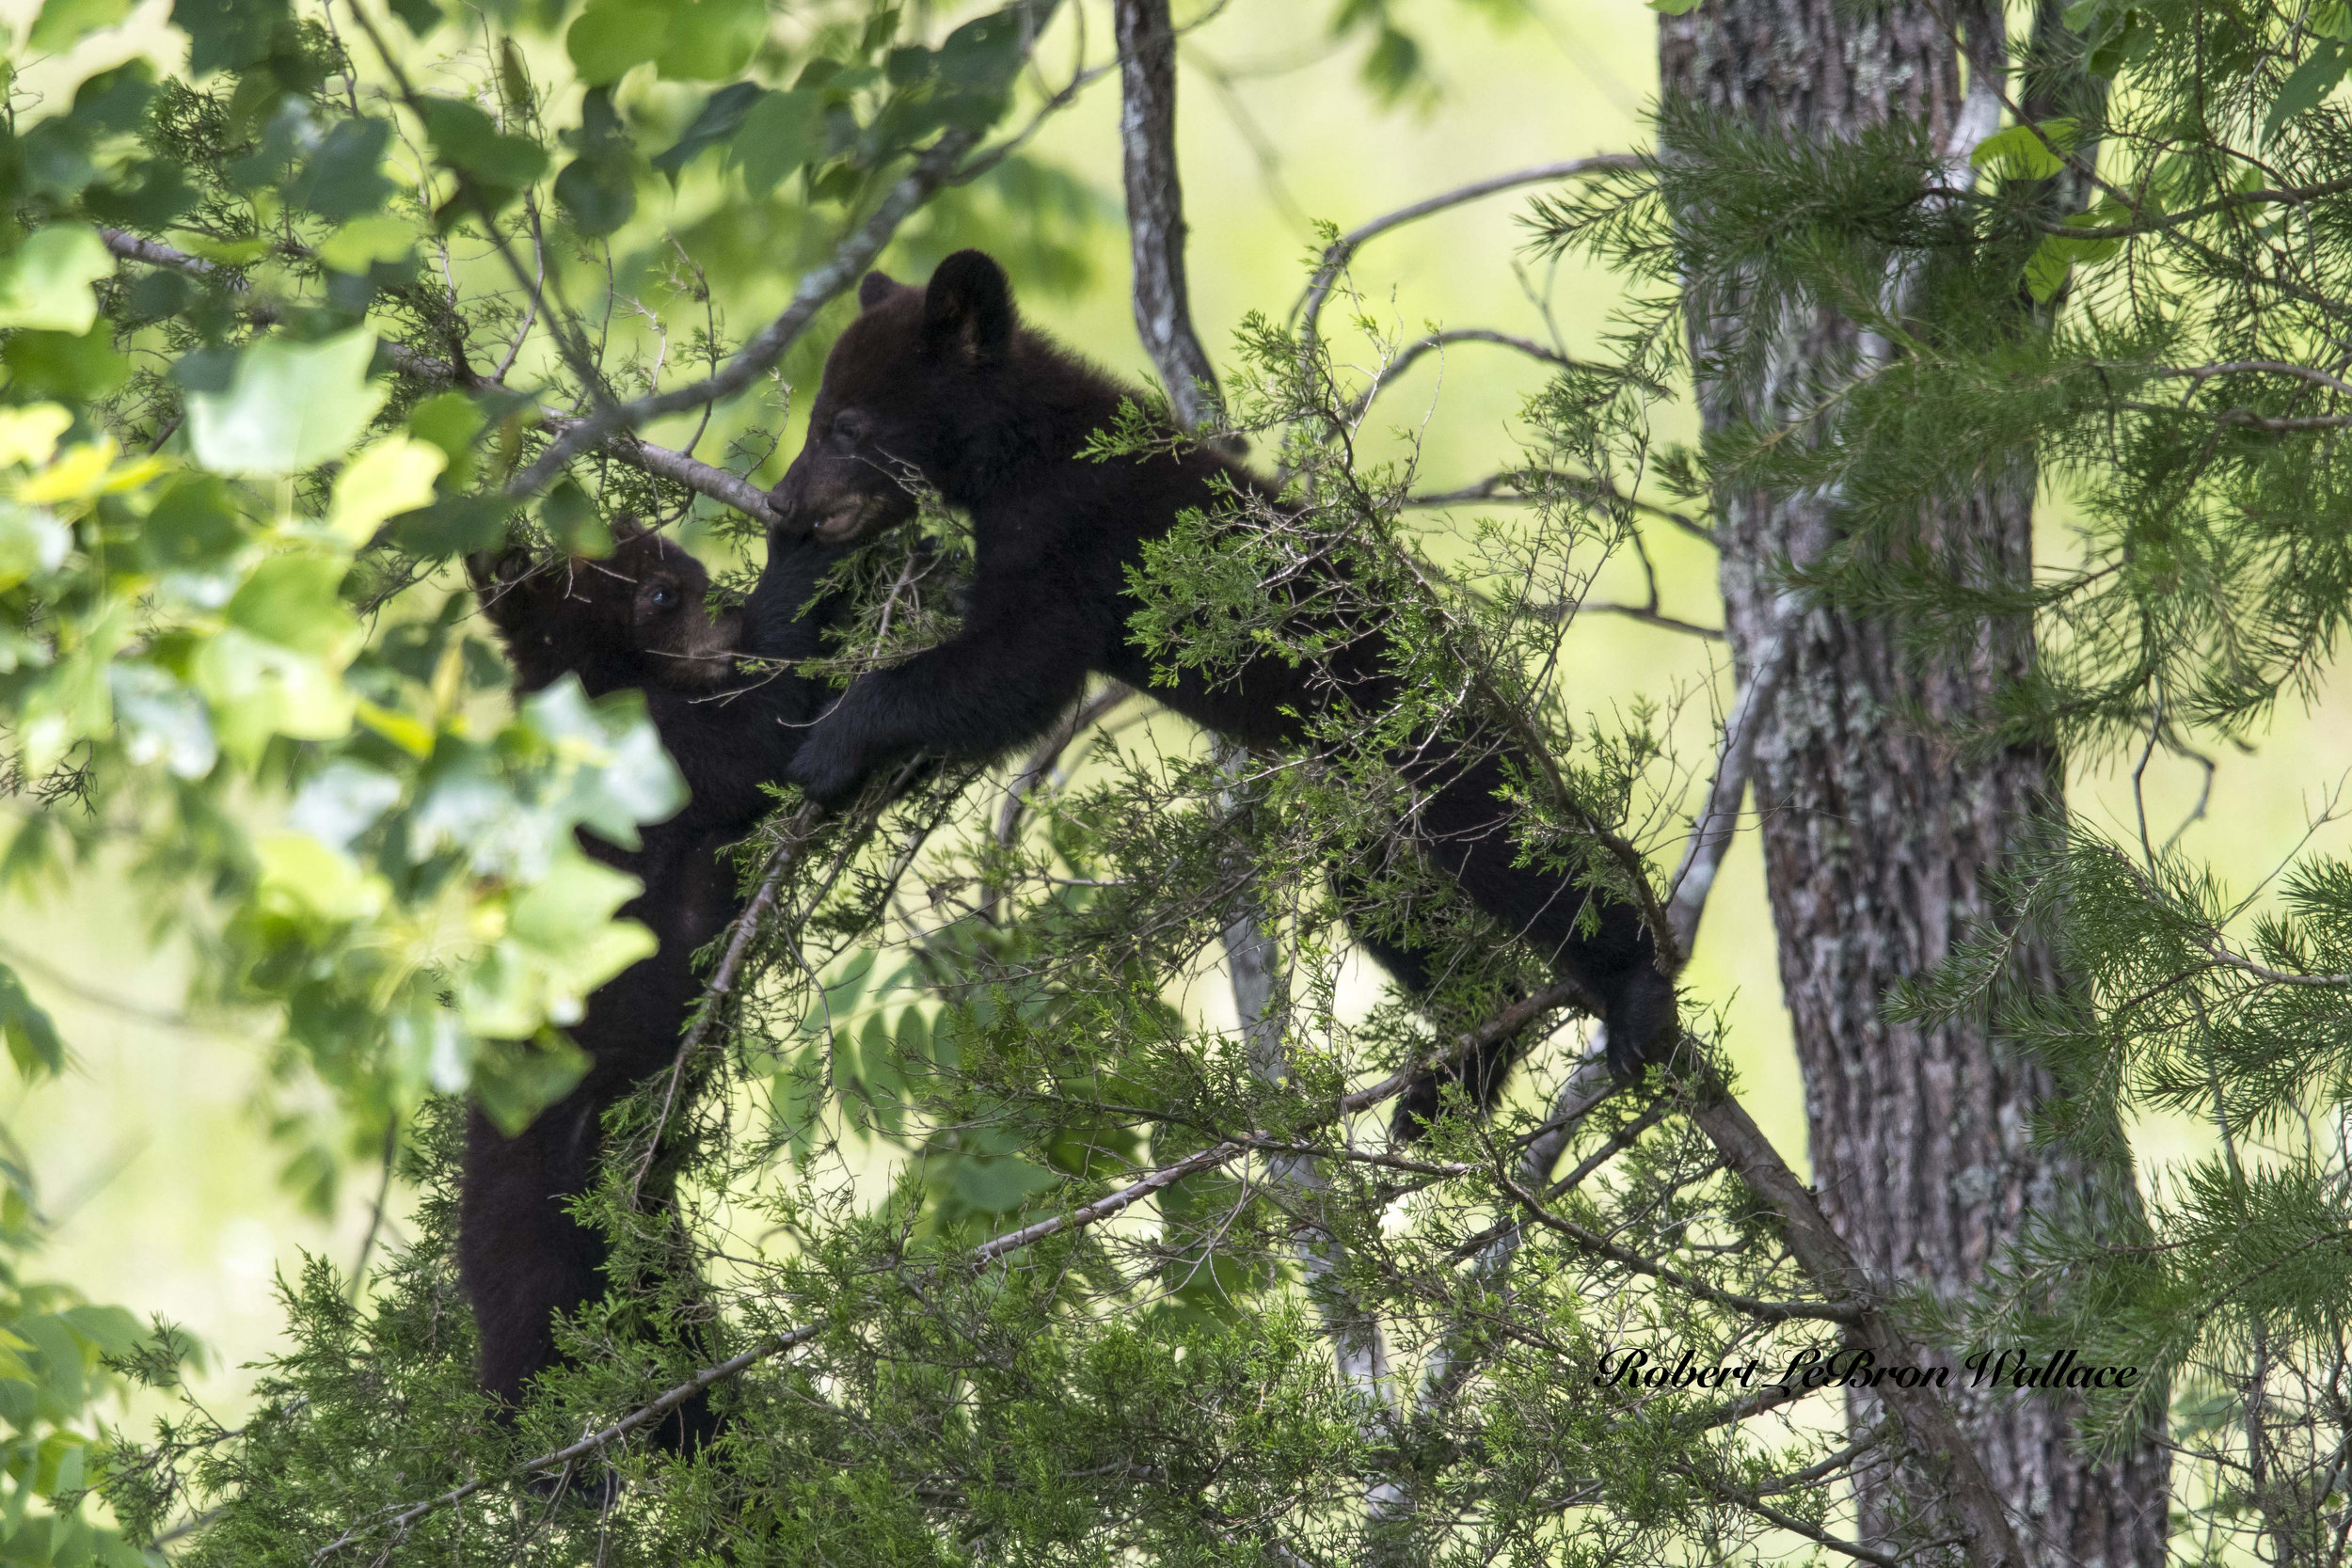 Black-bear-rain-Cade's-Cove-Tennessee-Wildlife-Photography.jpeg